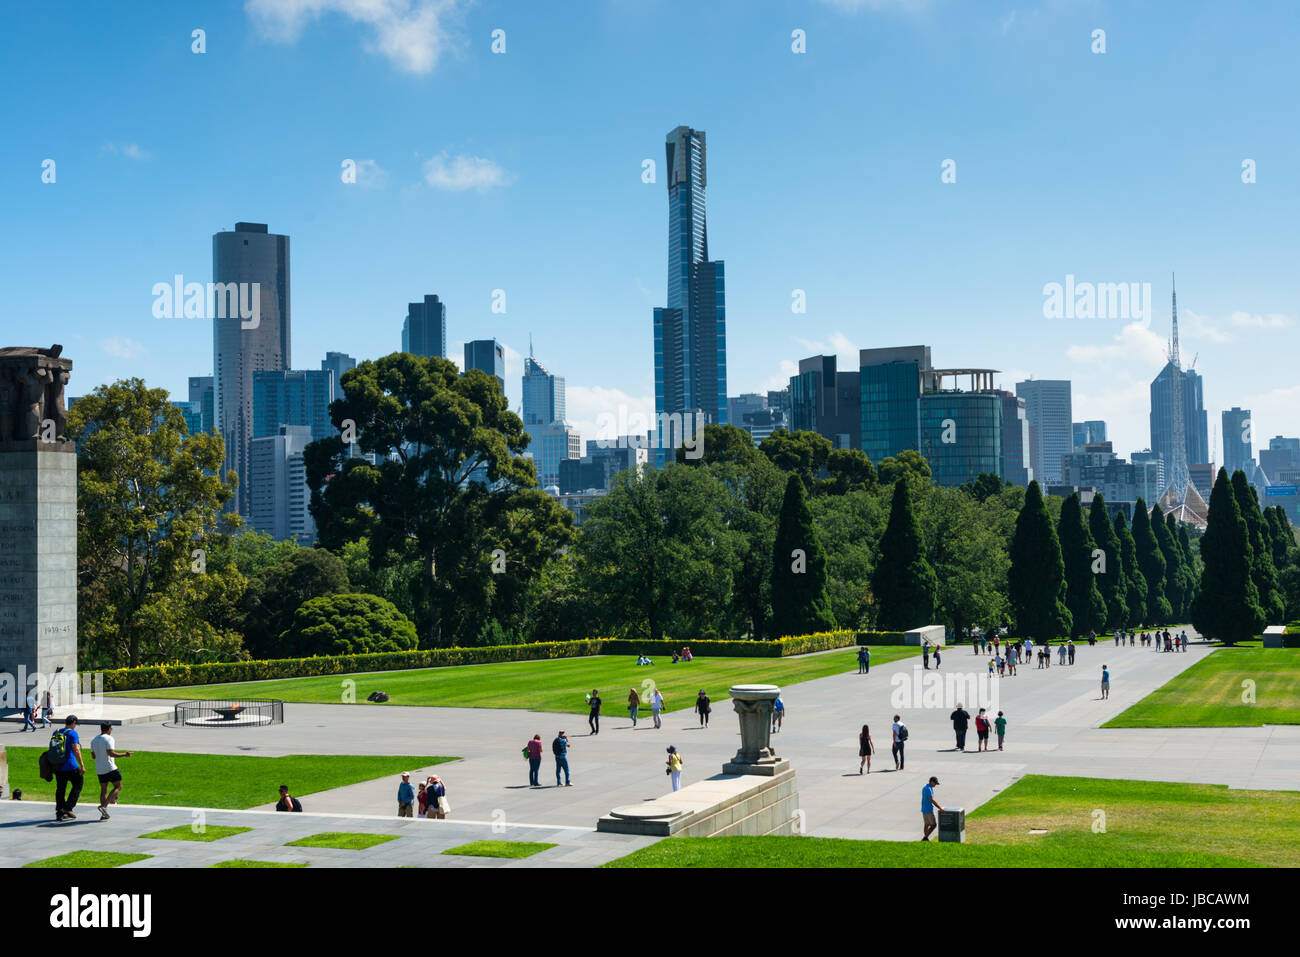 City skyline seen from Shrine of Remembrance, Melbourne, Victoria, Australia - Stock Image